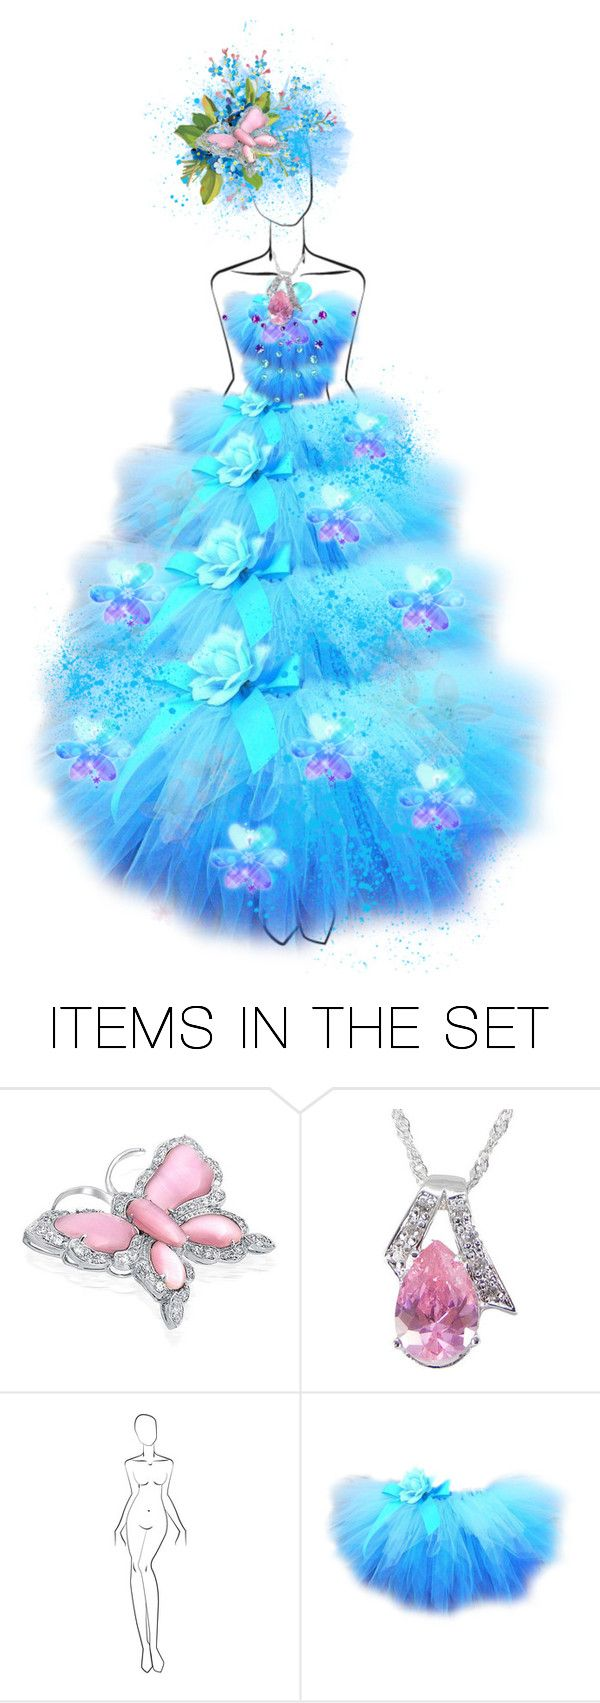 """Build-a-Dress"" by kari-c ❤ liked on Polyvore featuring art"